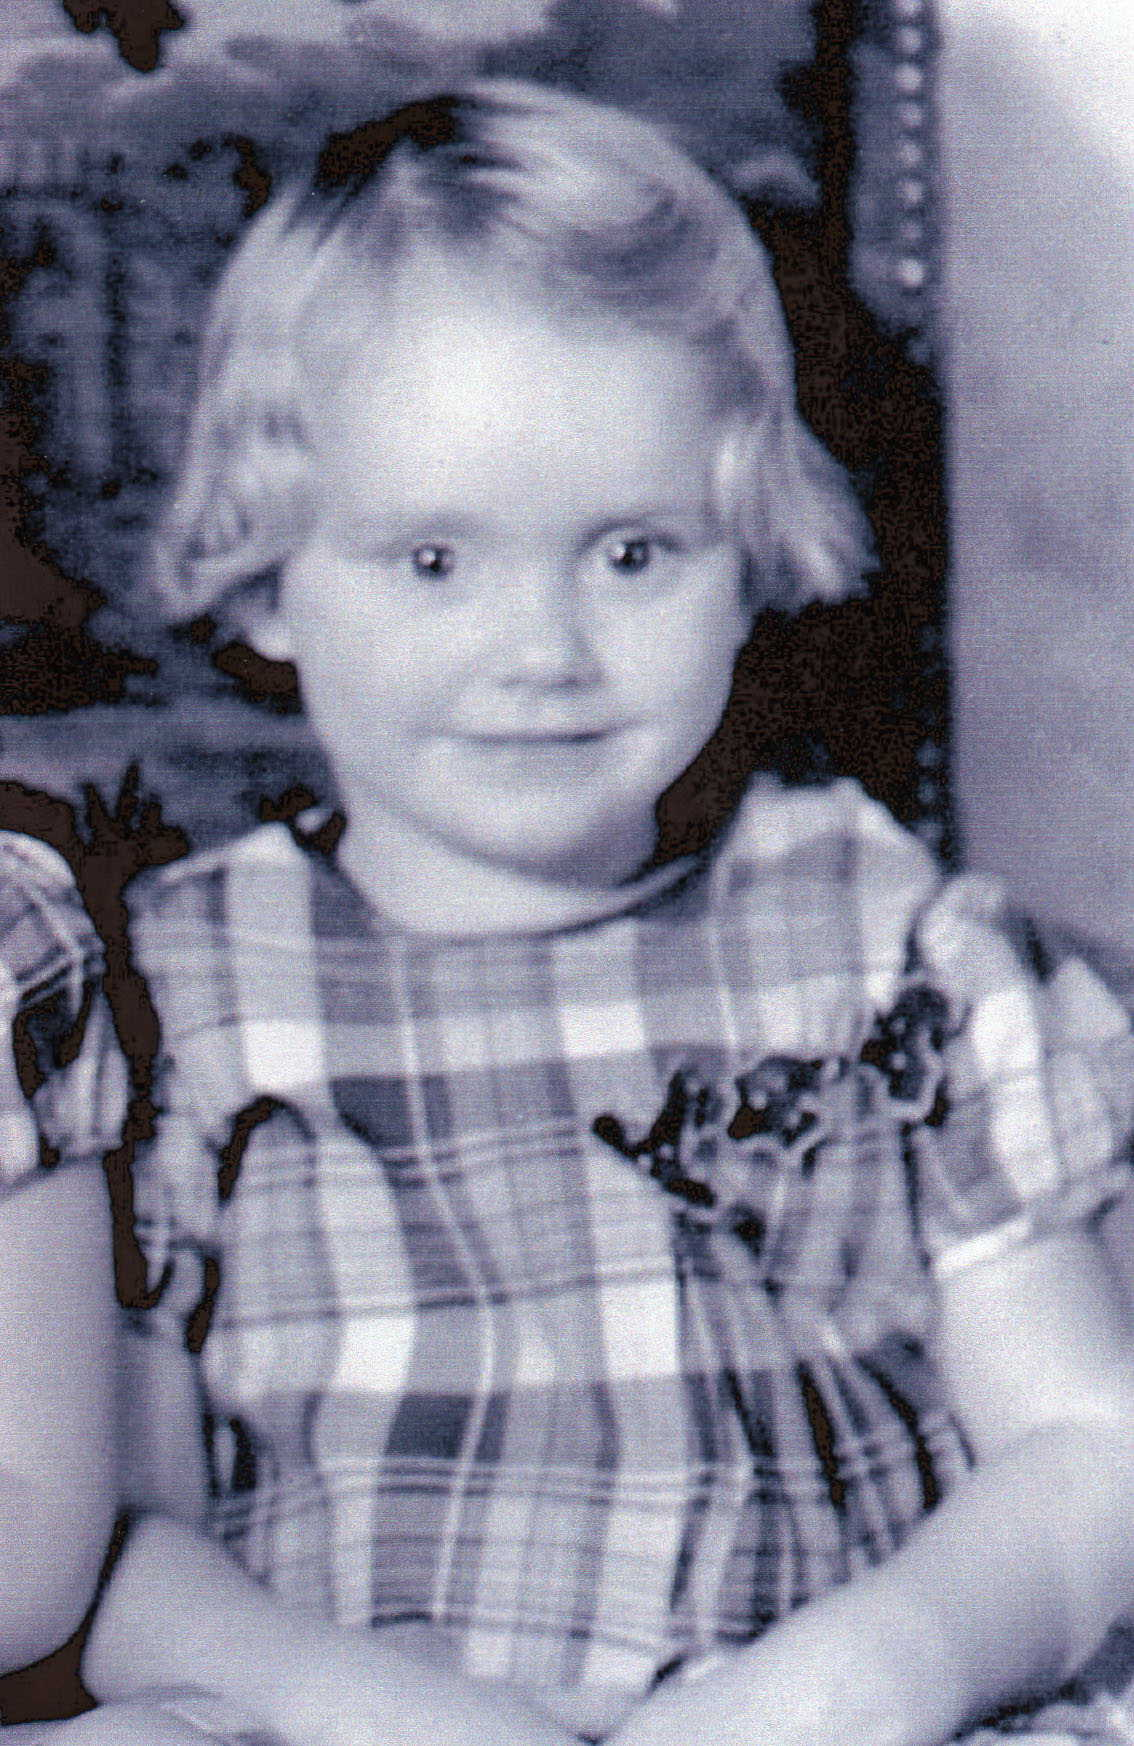 My grandmother as a little girl.